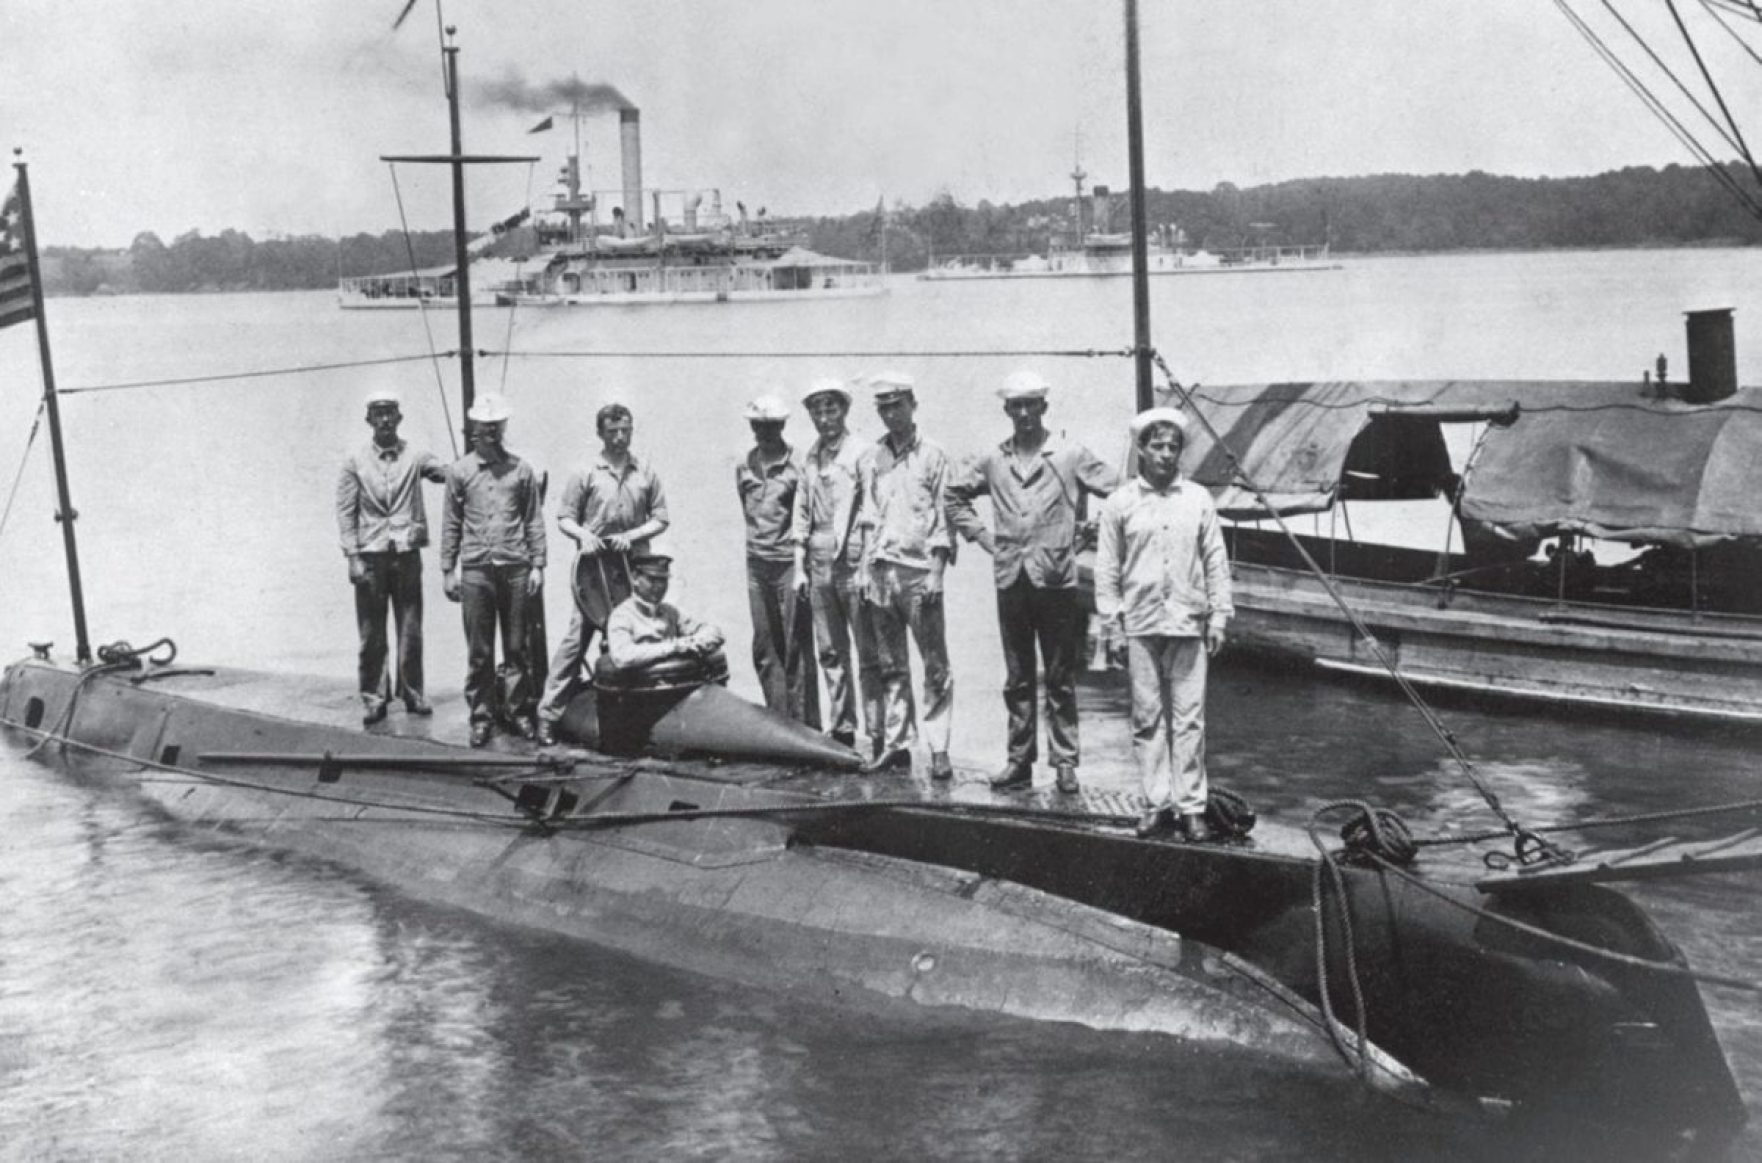 USS Holland (SS-1), the U.S. Navy's first modern submarine, was launched in May 1897 and commissioned in October 1900. She featured a conning tower, ballast and trim tanks, and a reloadable torpedo tube, along with a gasoline engine for running on the surface and an electric motor for submerged operation, powering a single screw. John P. Holland's company was purchased by the company that supplied his batteries, establishing a lineage leading to today's General Dynamics Electric Boat.